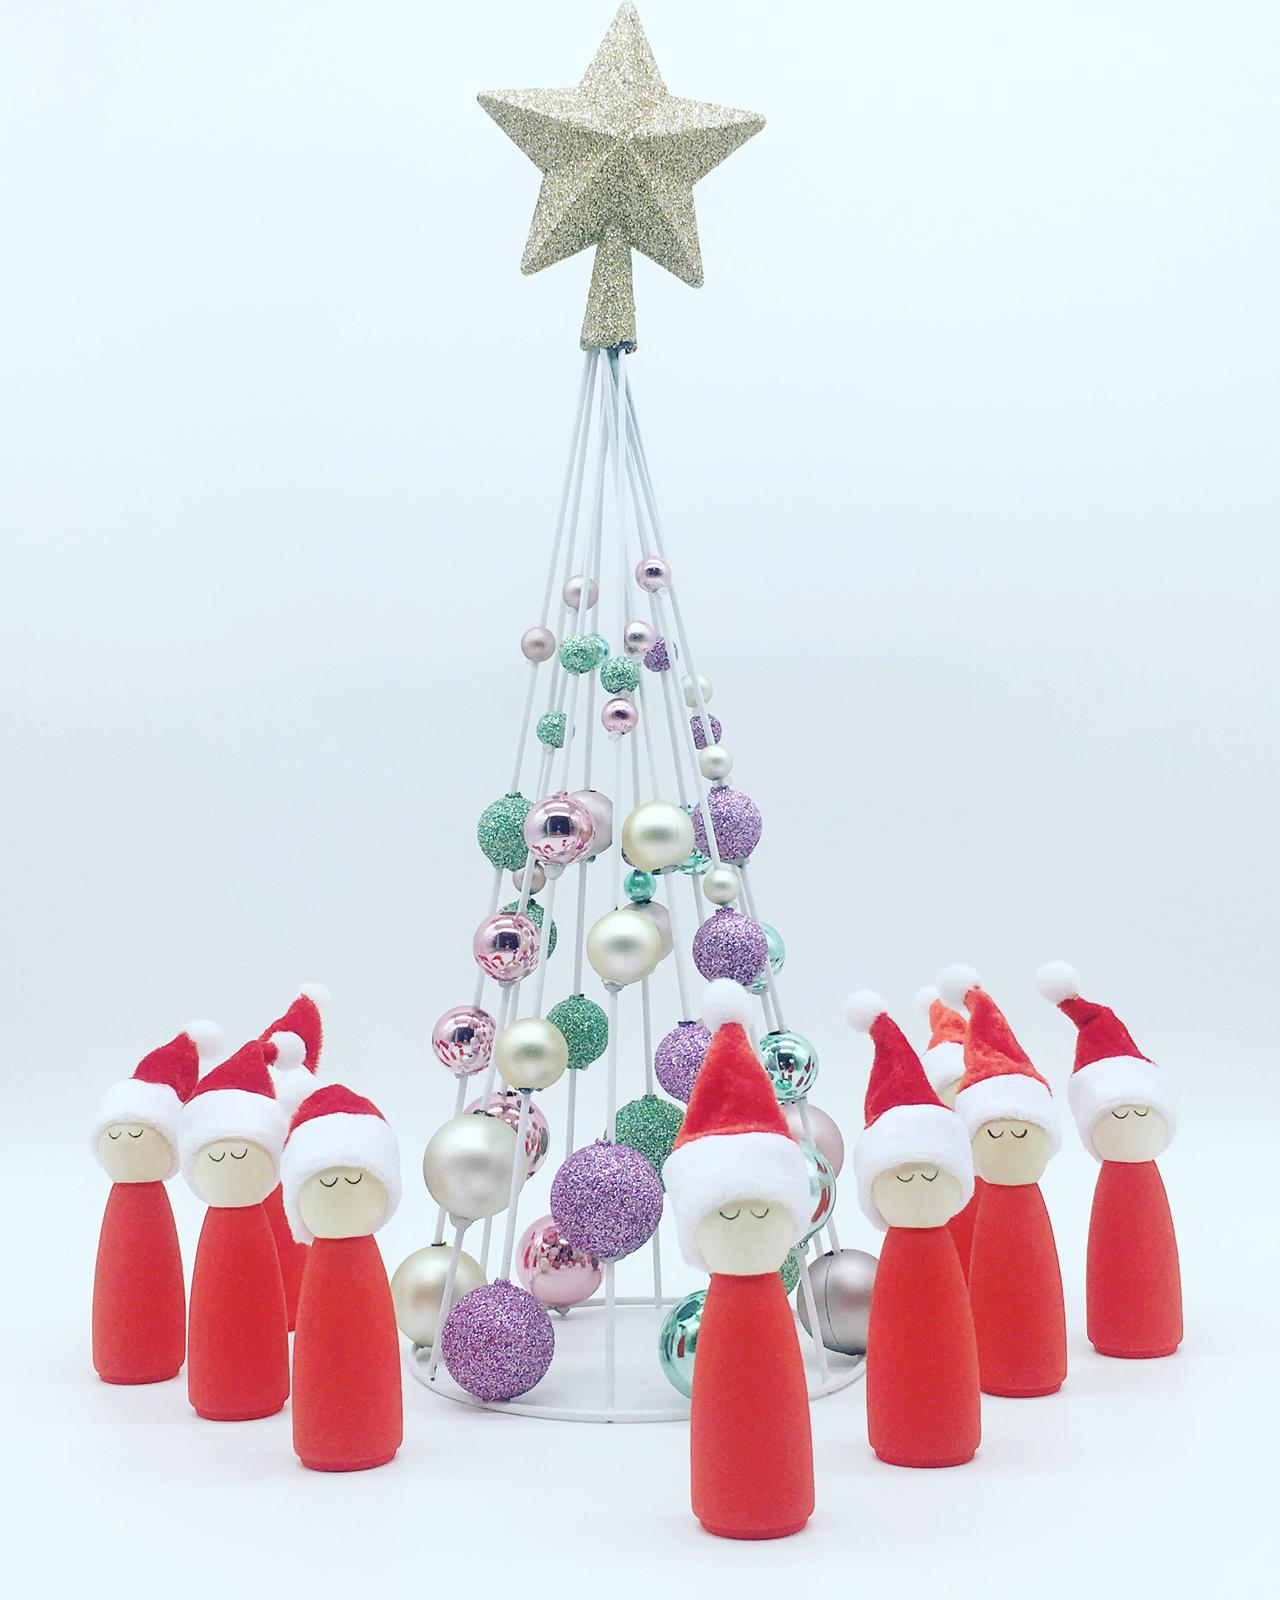 Christmas peg dolls